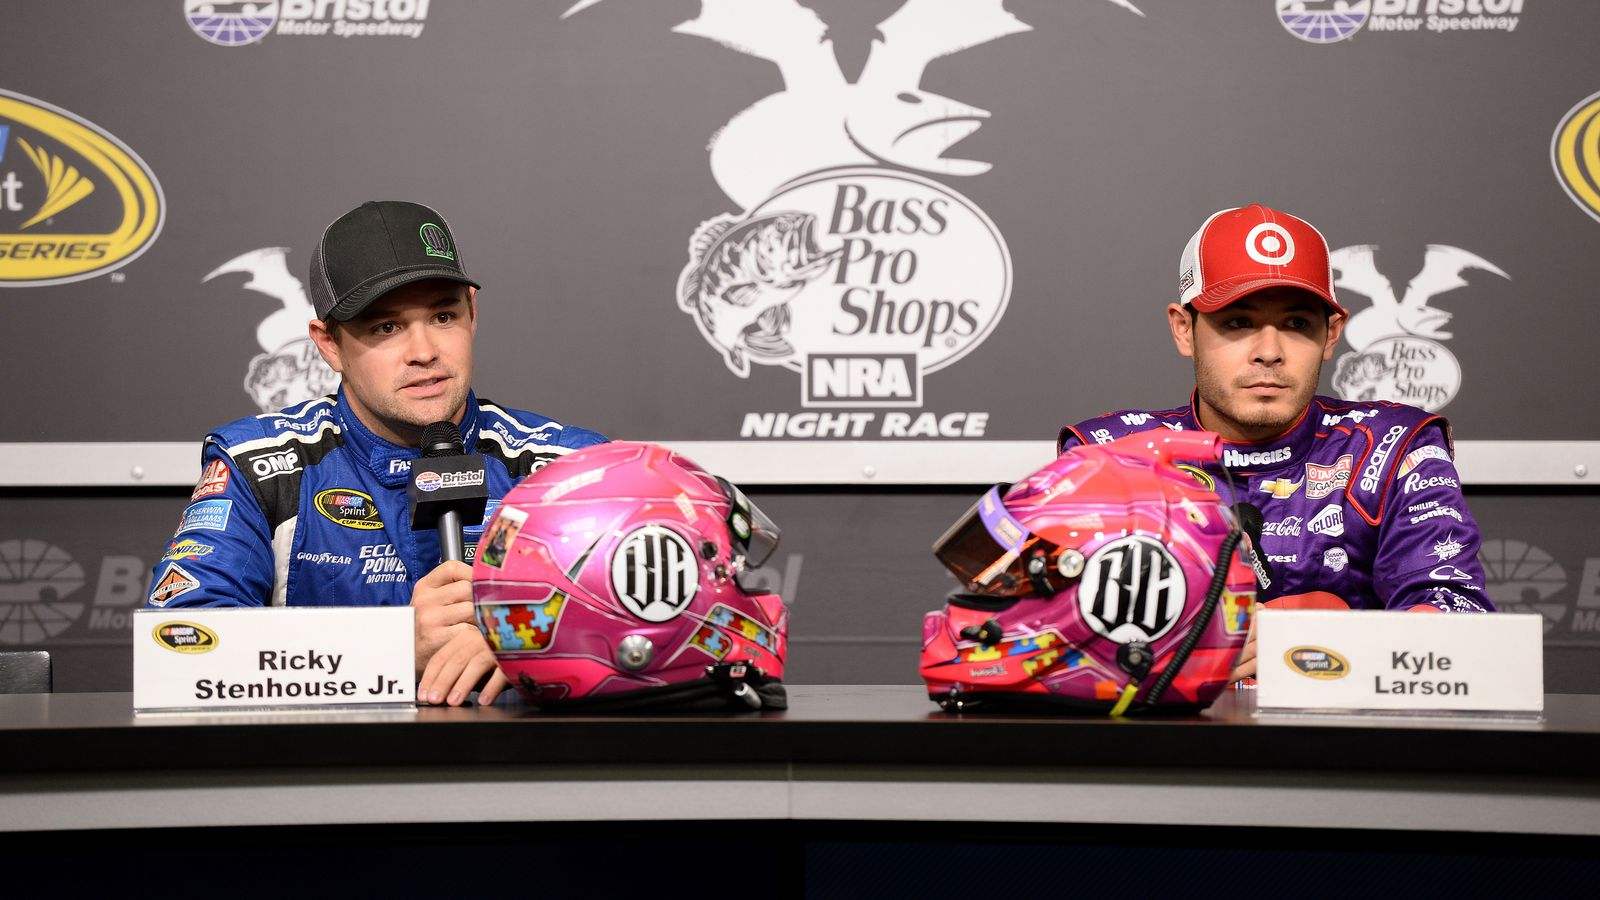 Kyle Larson Ricky Stenhouse Jr Honoring Bryan Clauson With Special Pink Helmets At Bristol